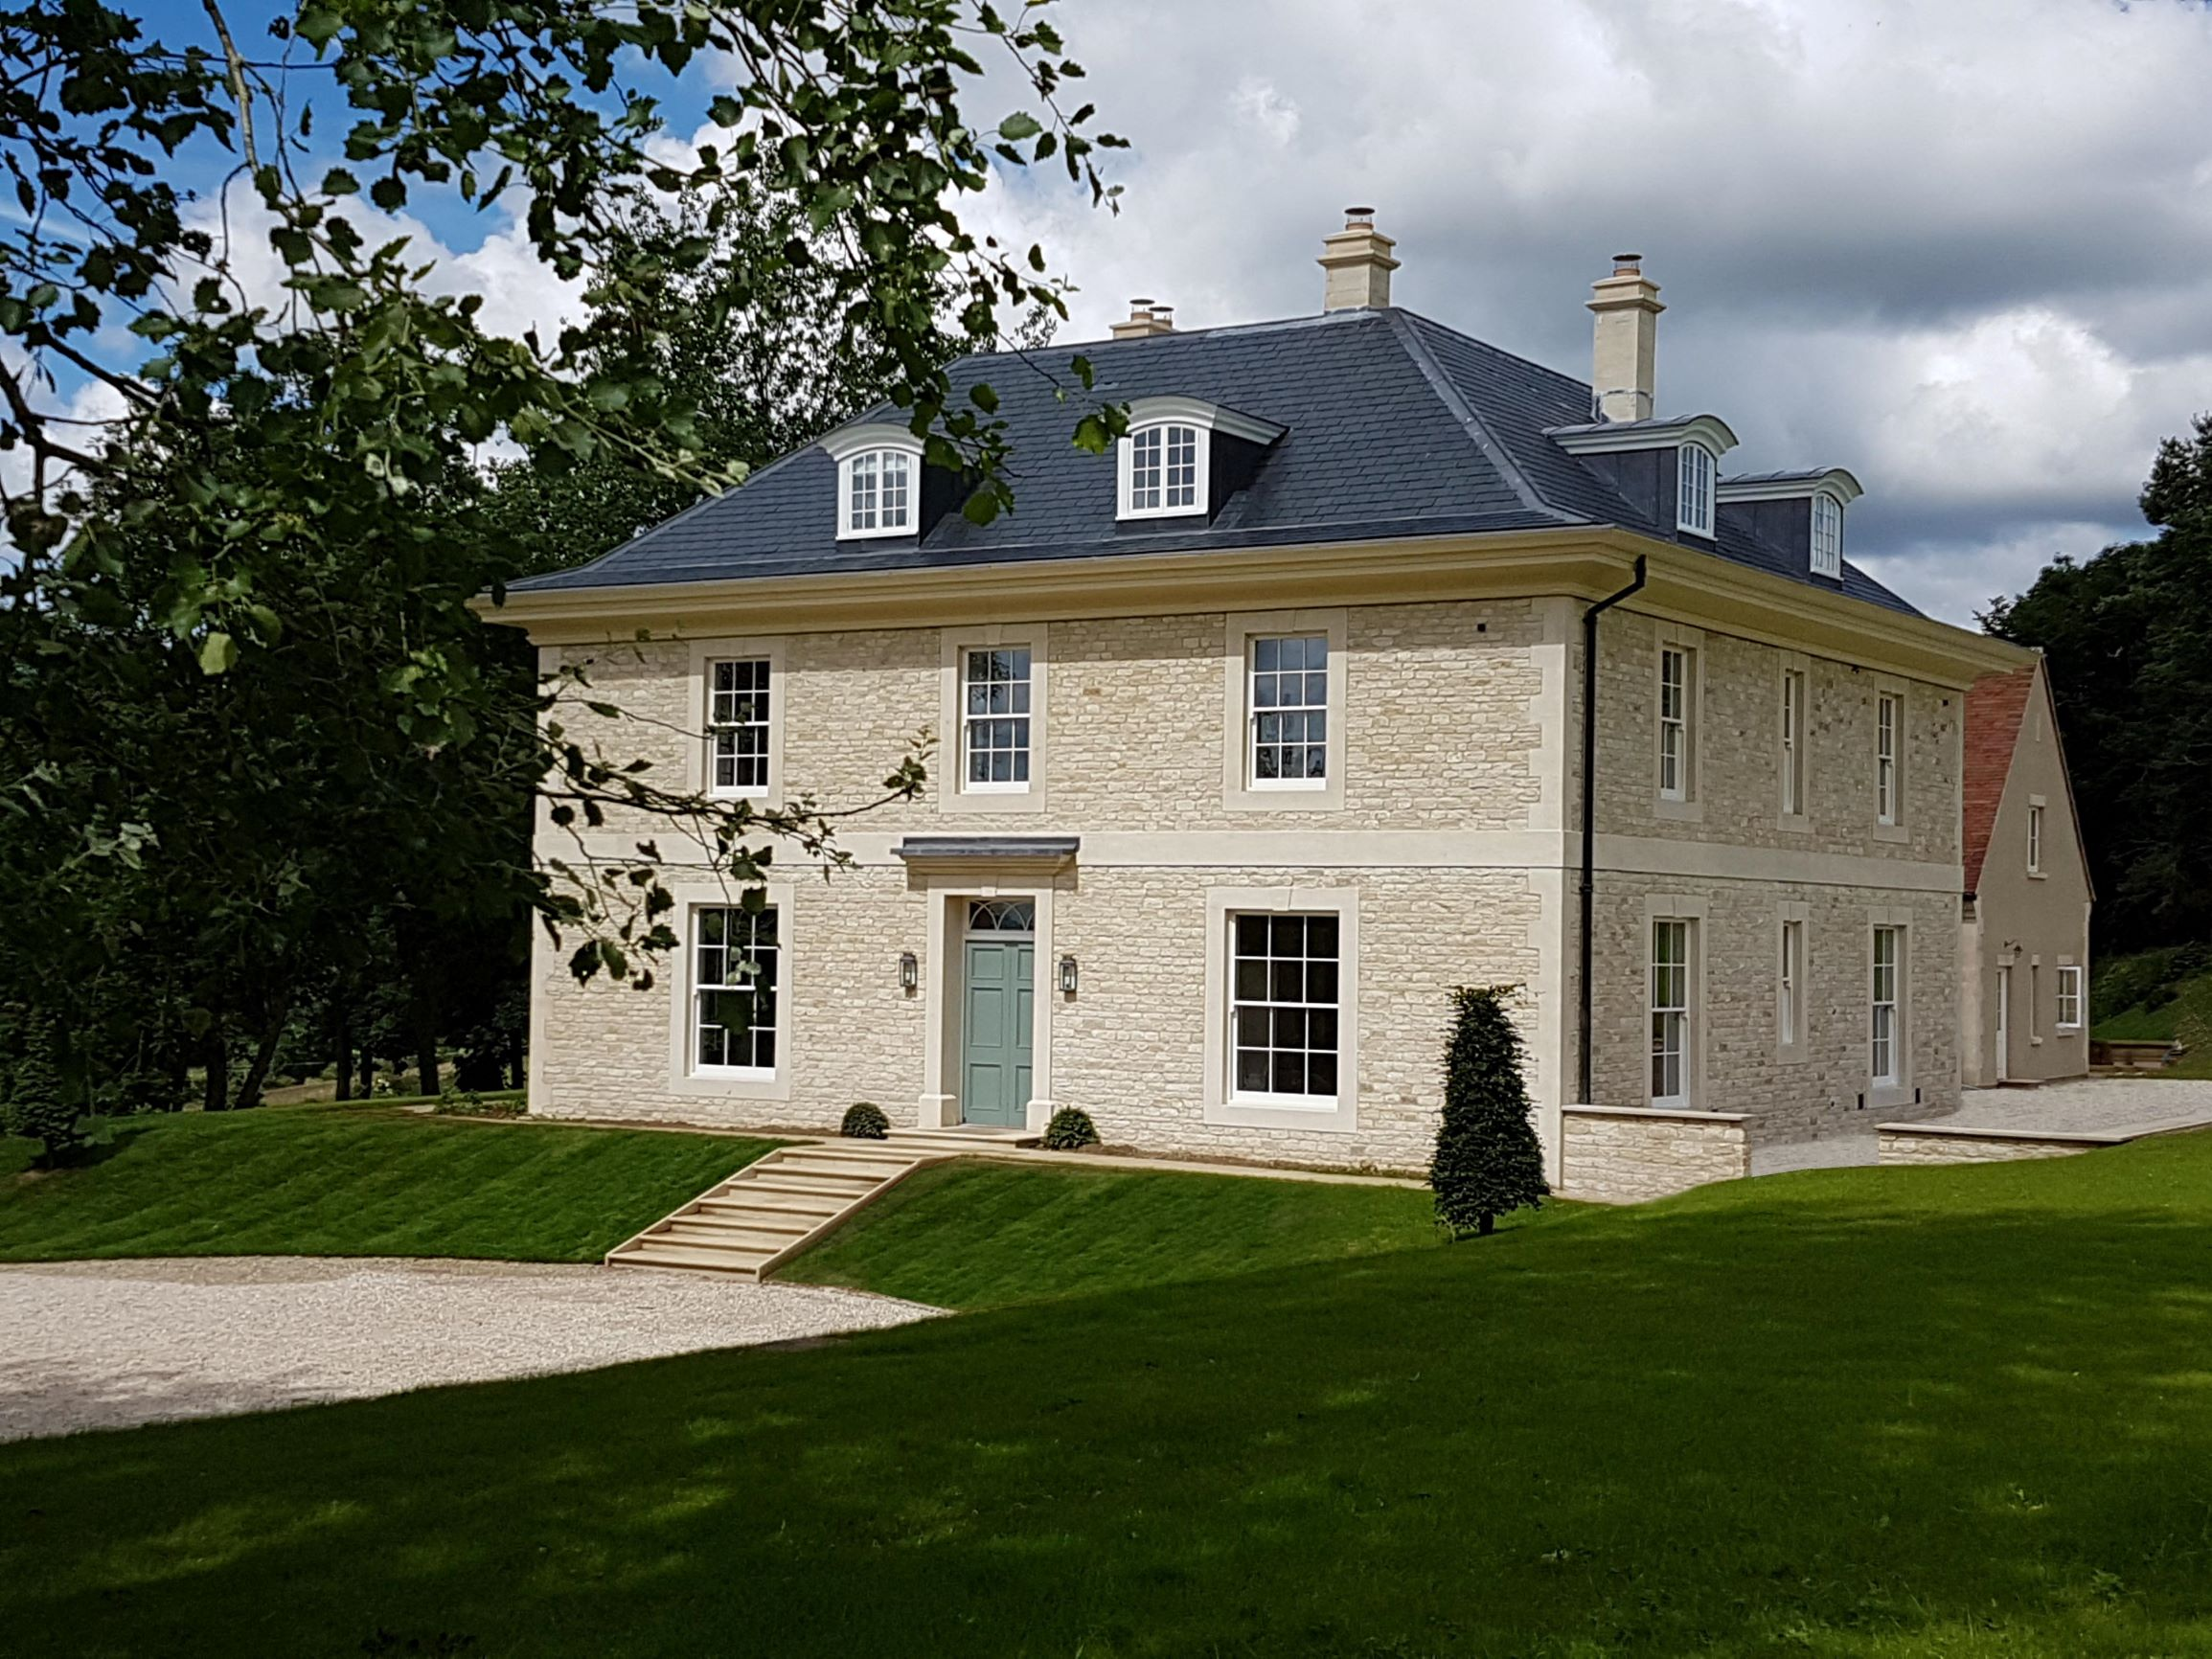 Chedworth House, by Wiltshire architects Richmond Bell Architects